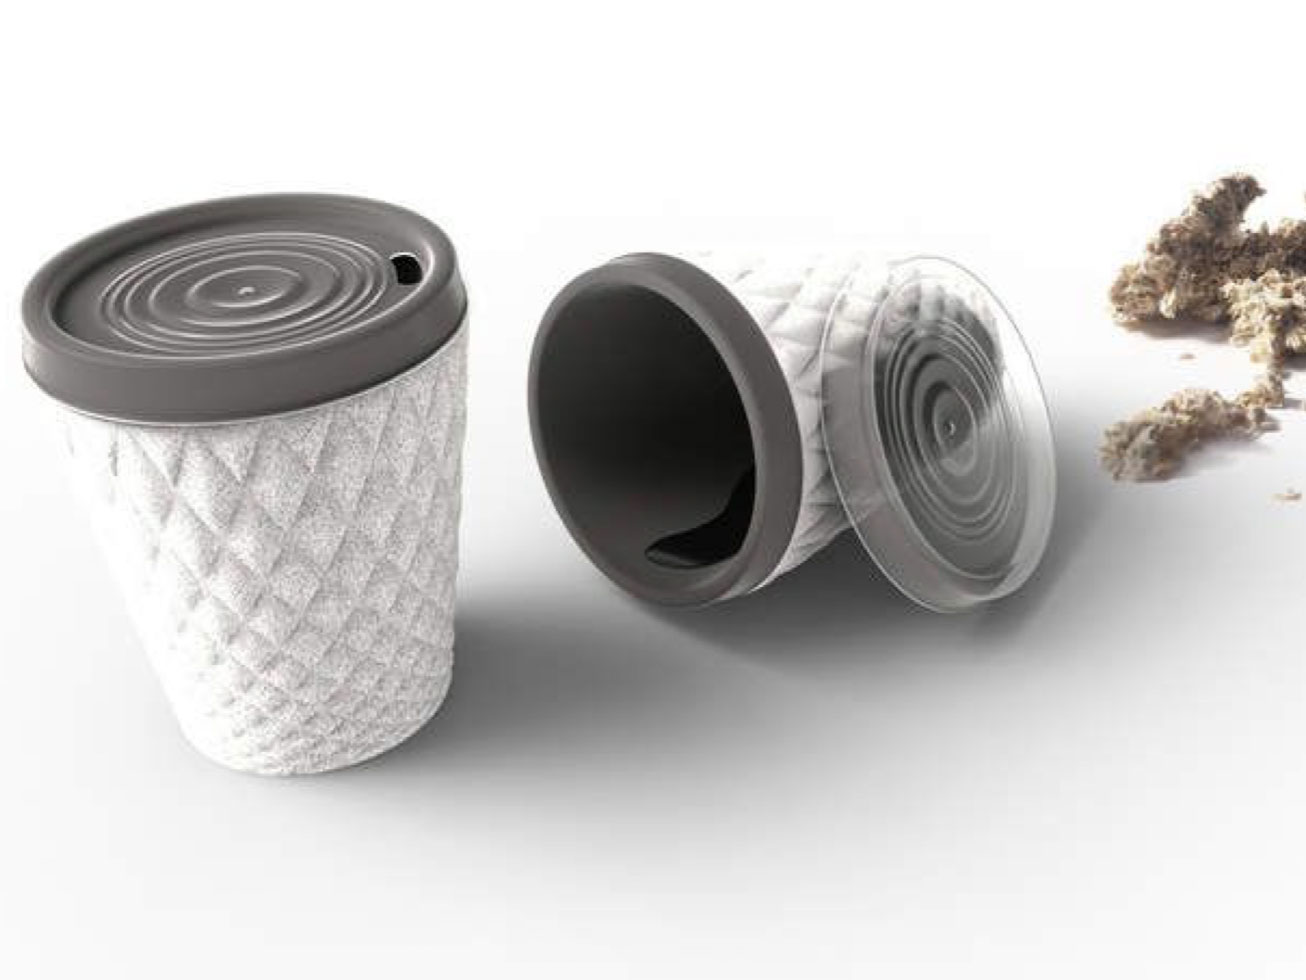 Starbucks' New Cups Might Look Like This